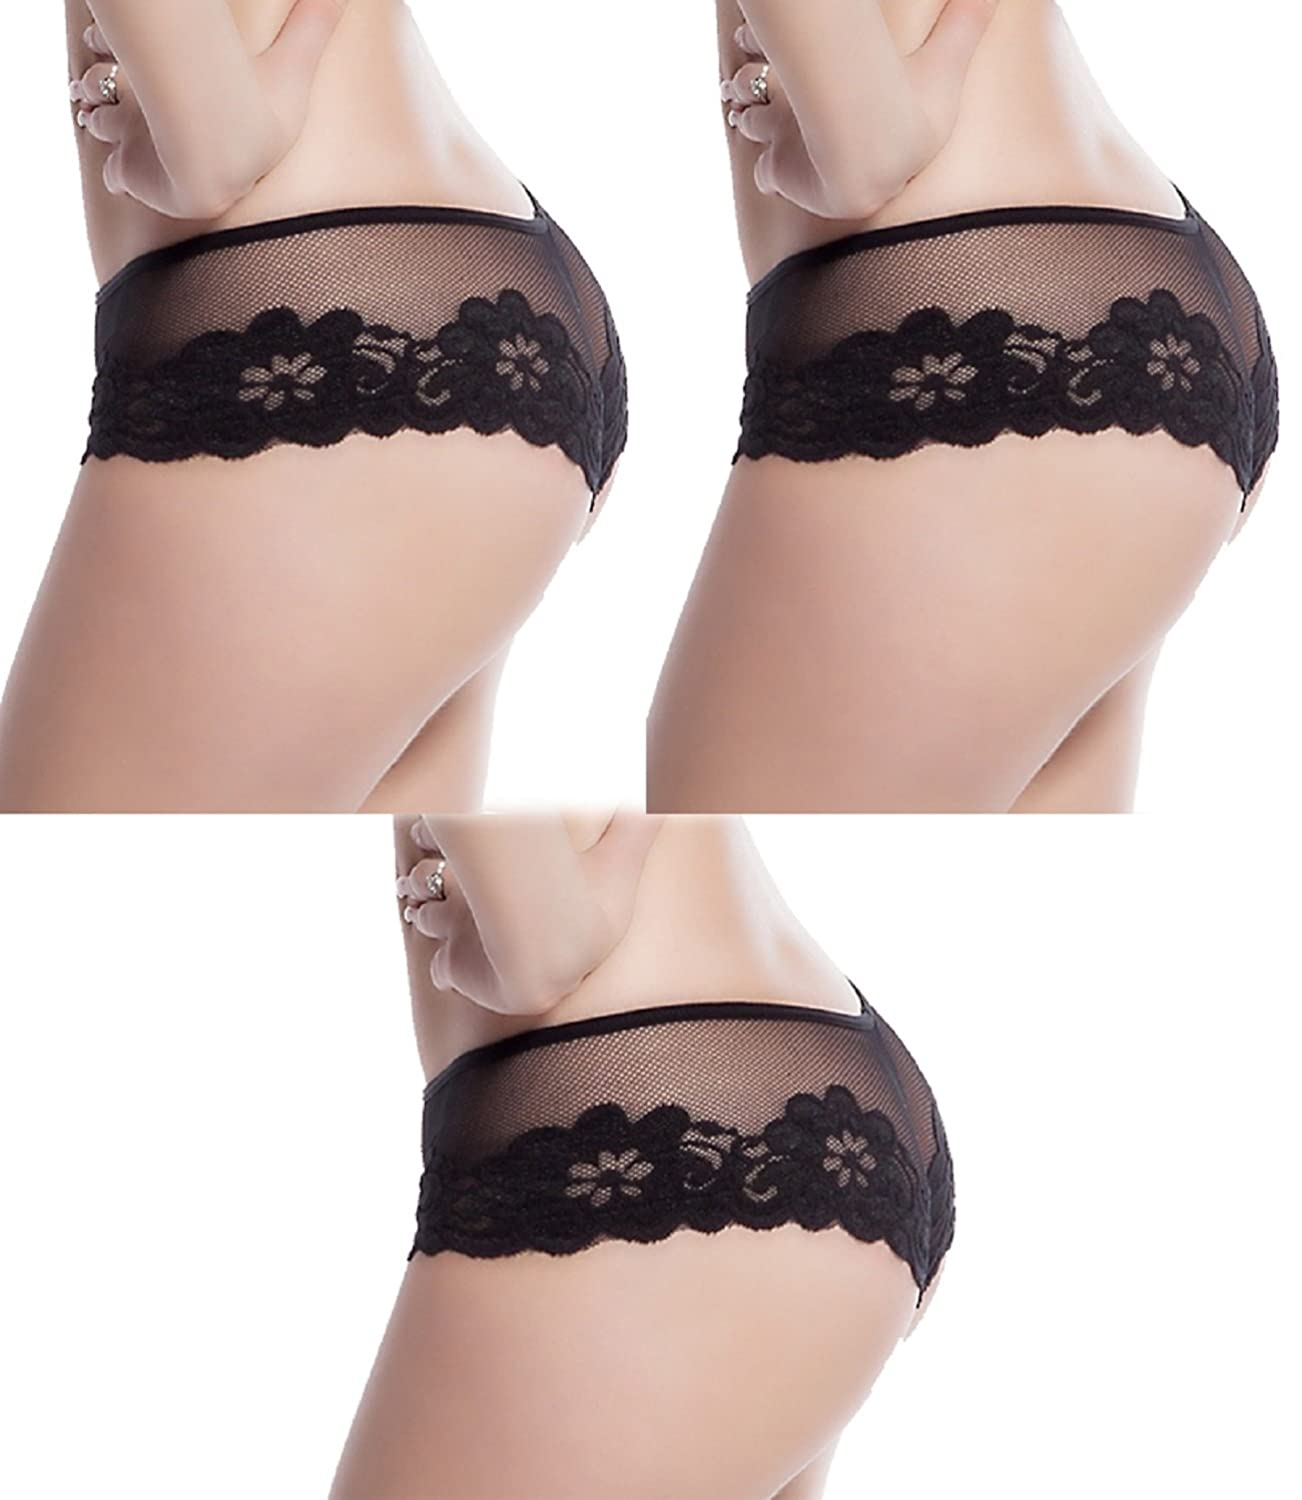 Slocyclub Women's Lace Mesh Boyshort Panty Lady Bottom Underwear